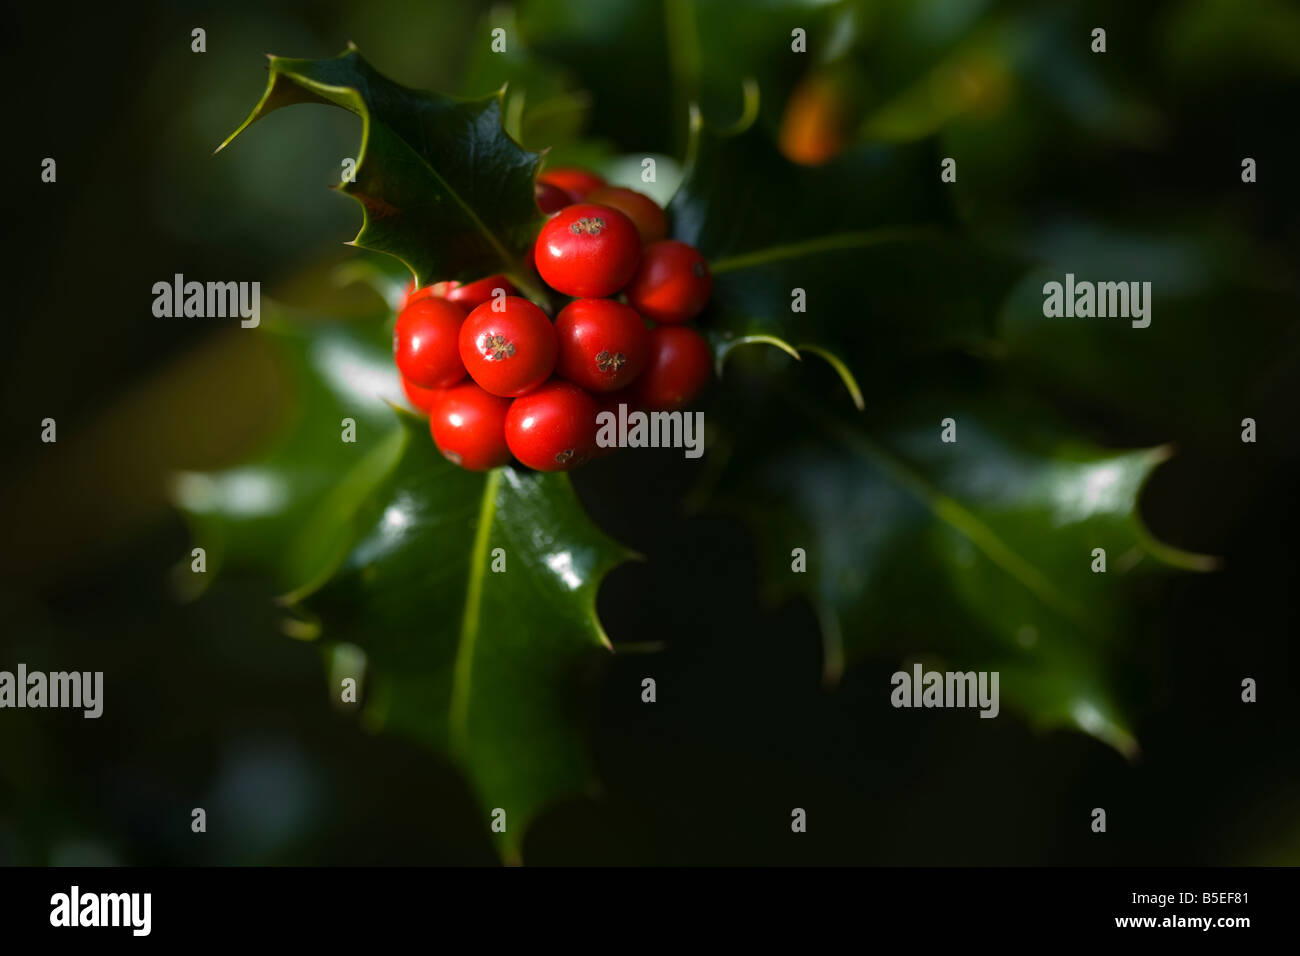 A close up of holly berries and holly leaves - Stock Image